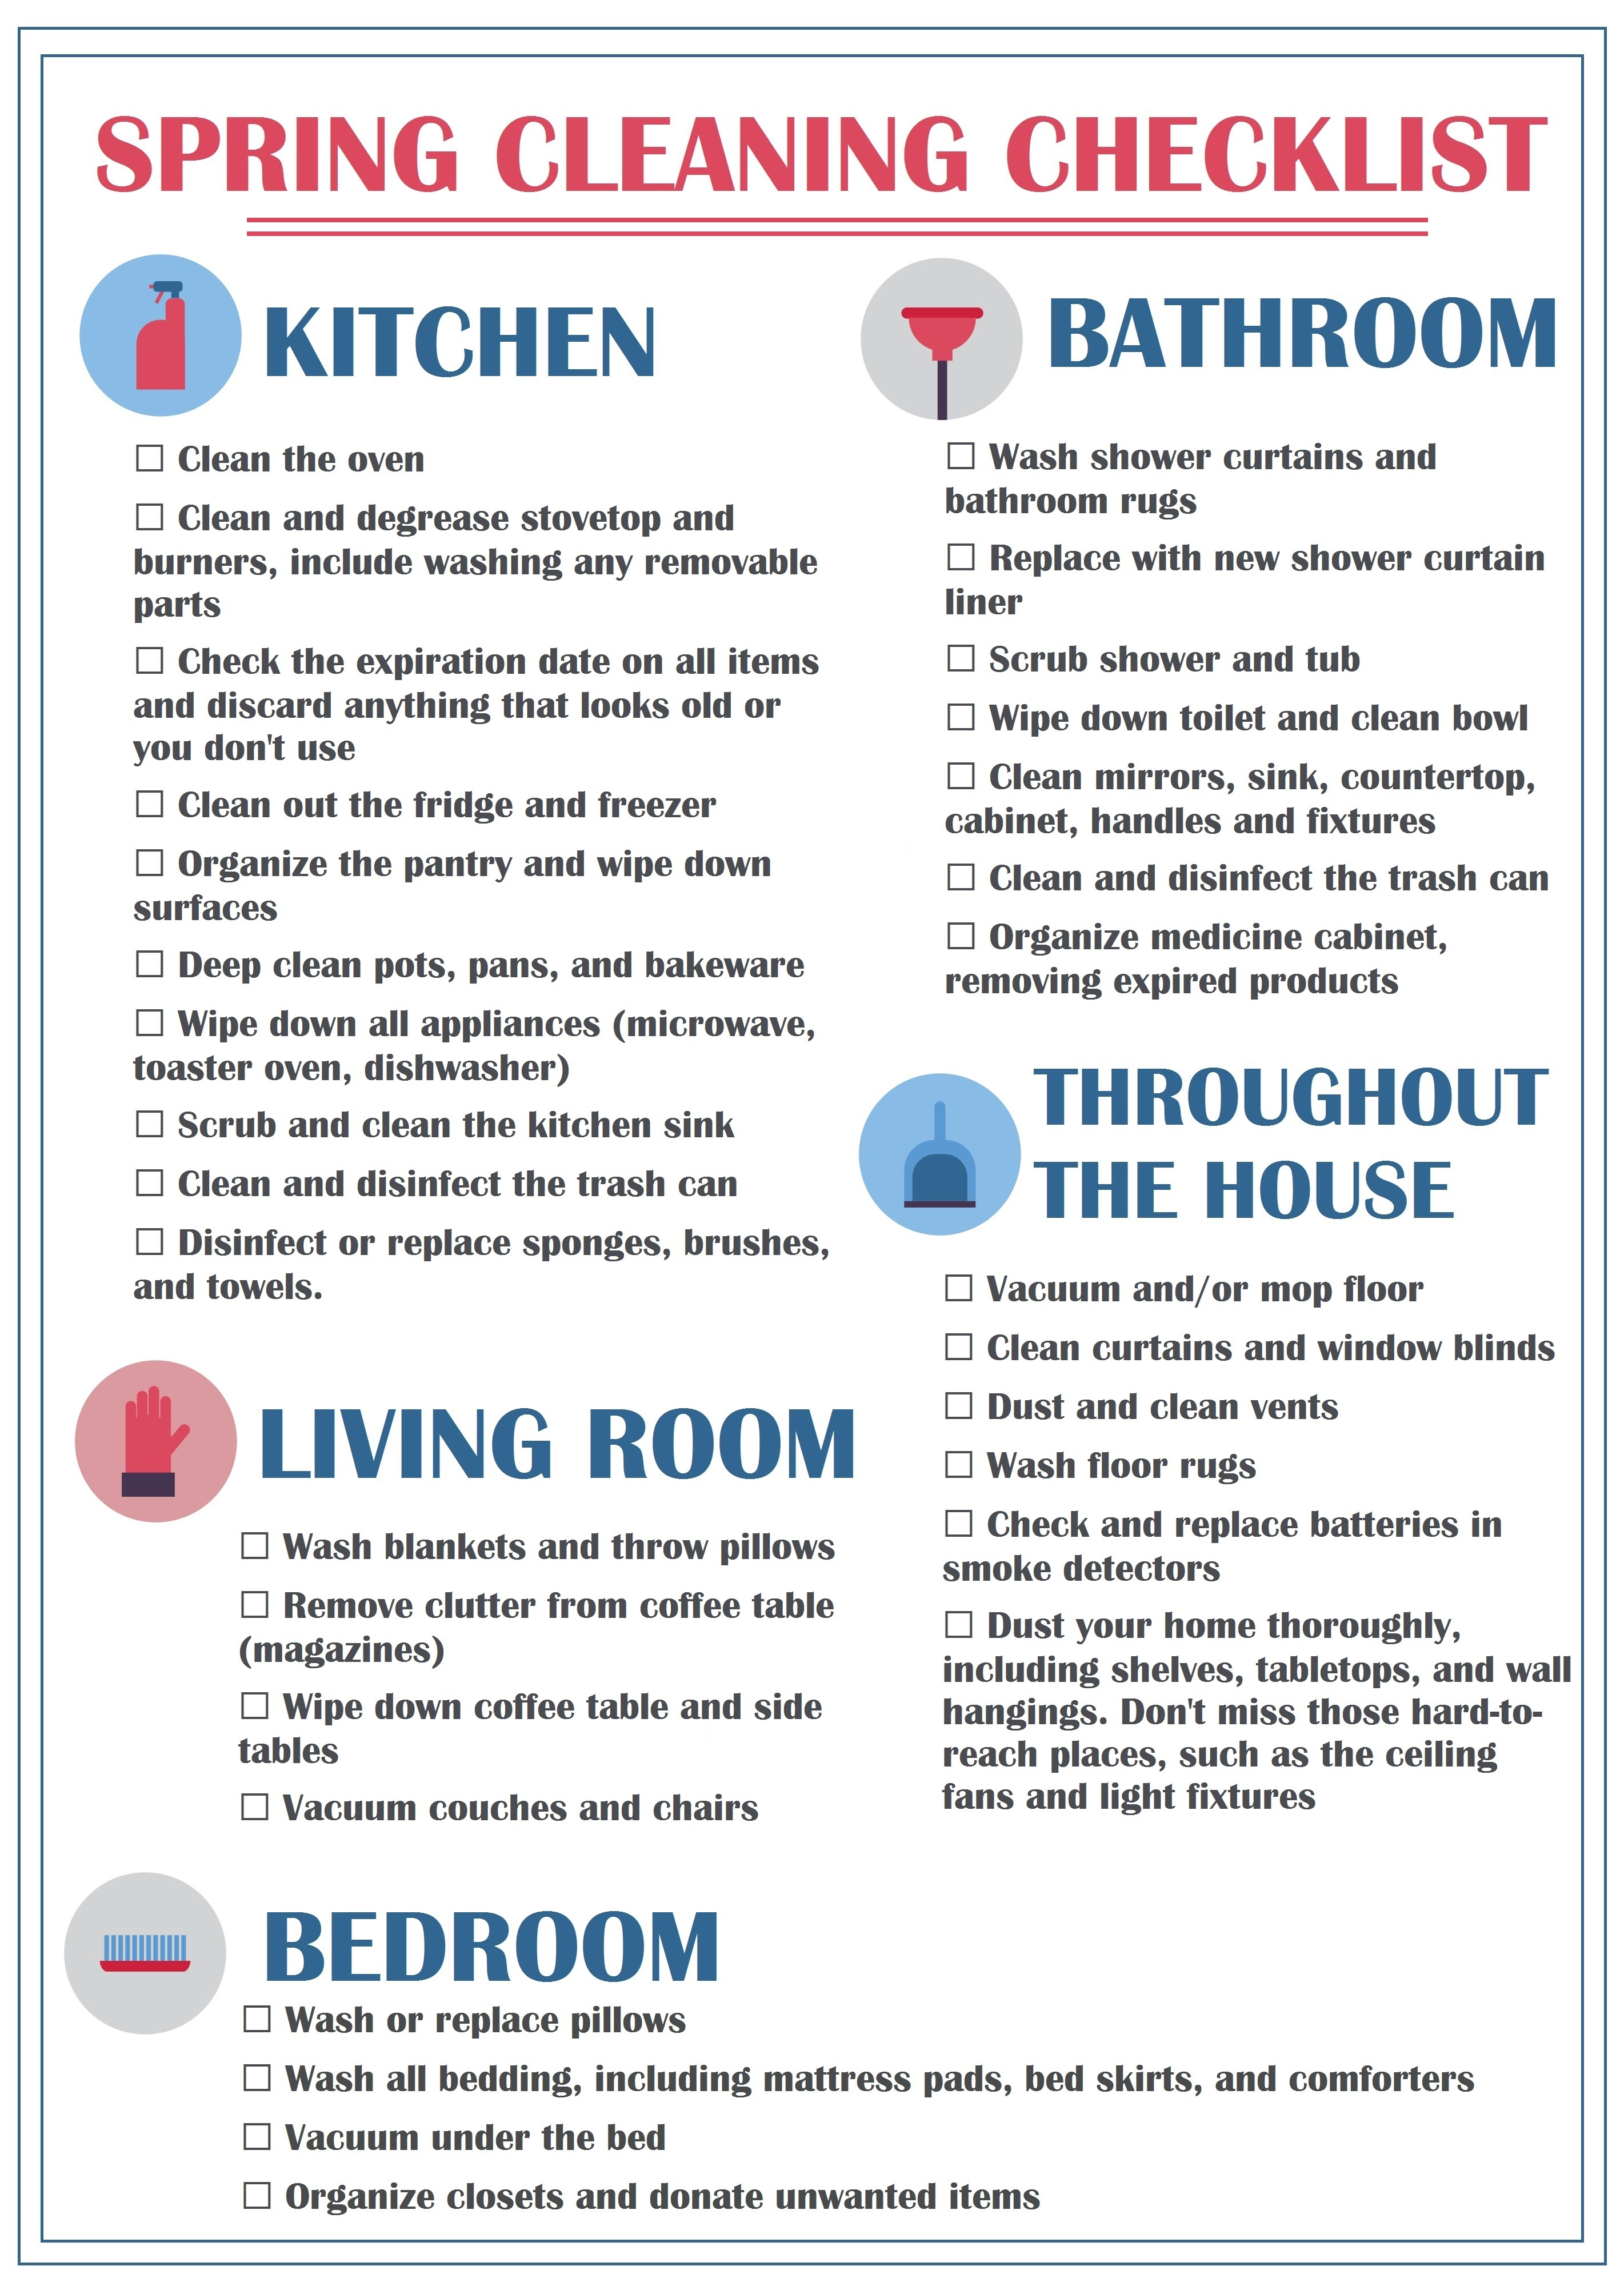 Spring Cleaning Doesnu0027t Have To Feel Overwhelming. Print This Checklist Out  And Put It Somewhere Where Youu0027ll See It And Be Reminded Of Your List And  You ...